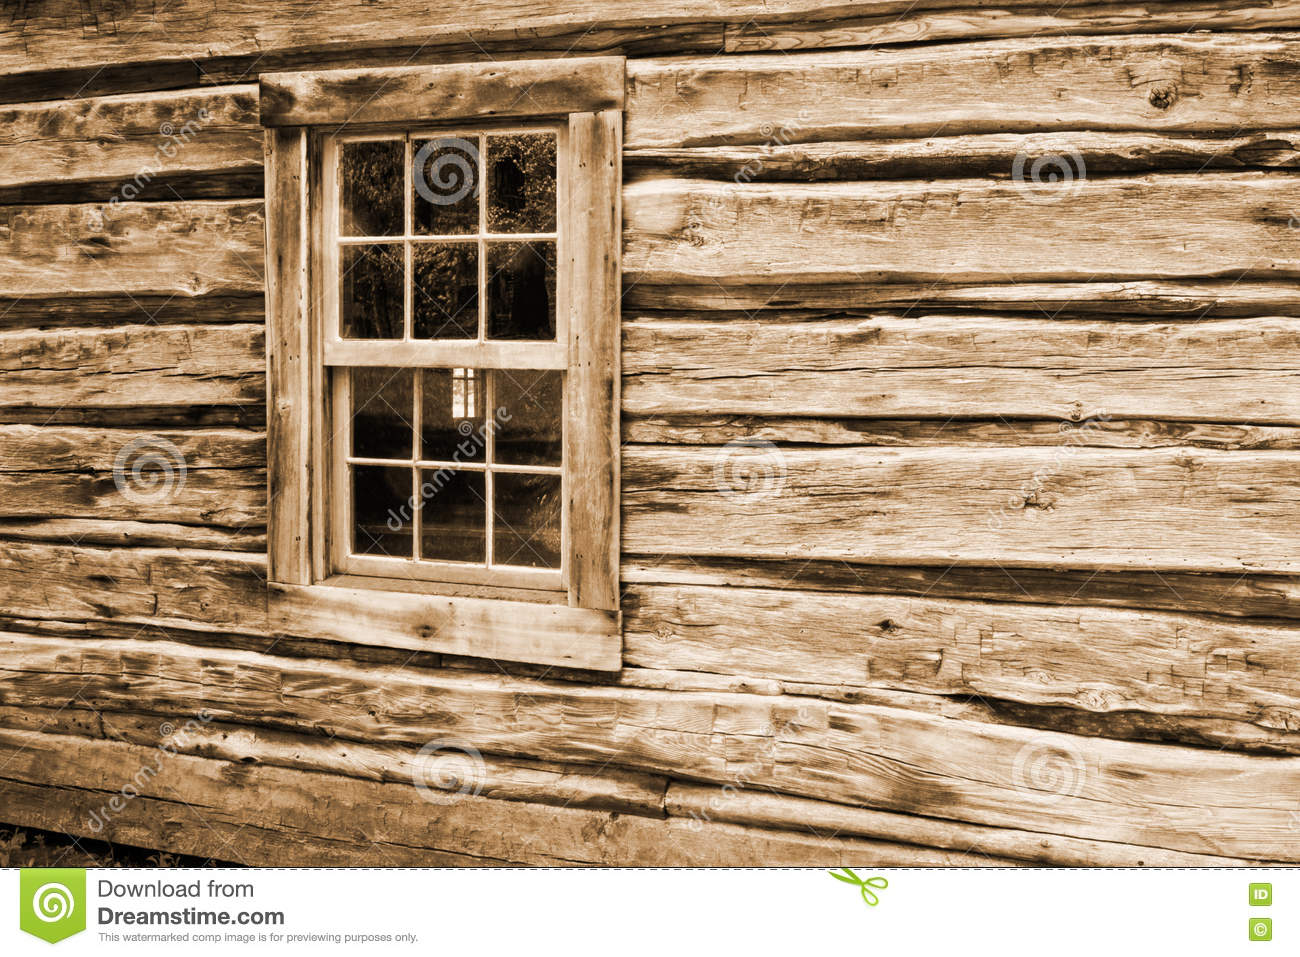 Log cabin wall and window stock photo image of backgrounds 70888920 for Log cabin window